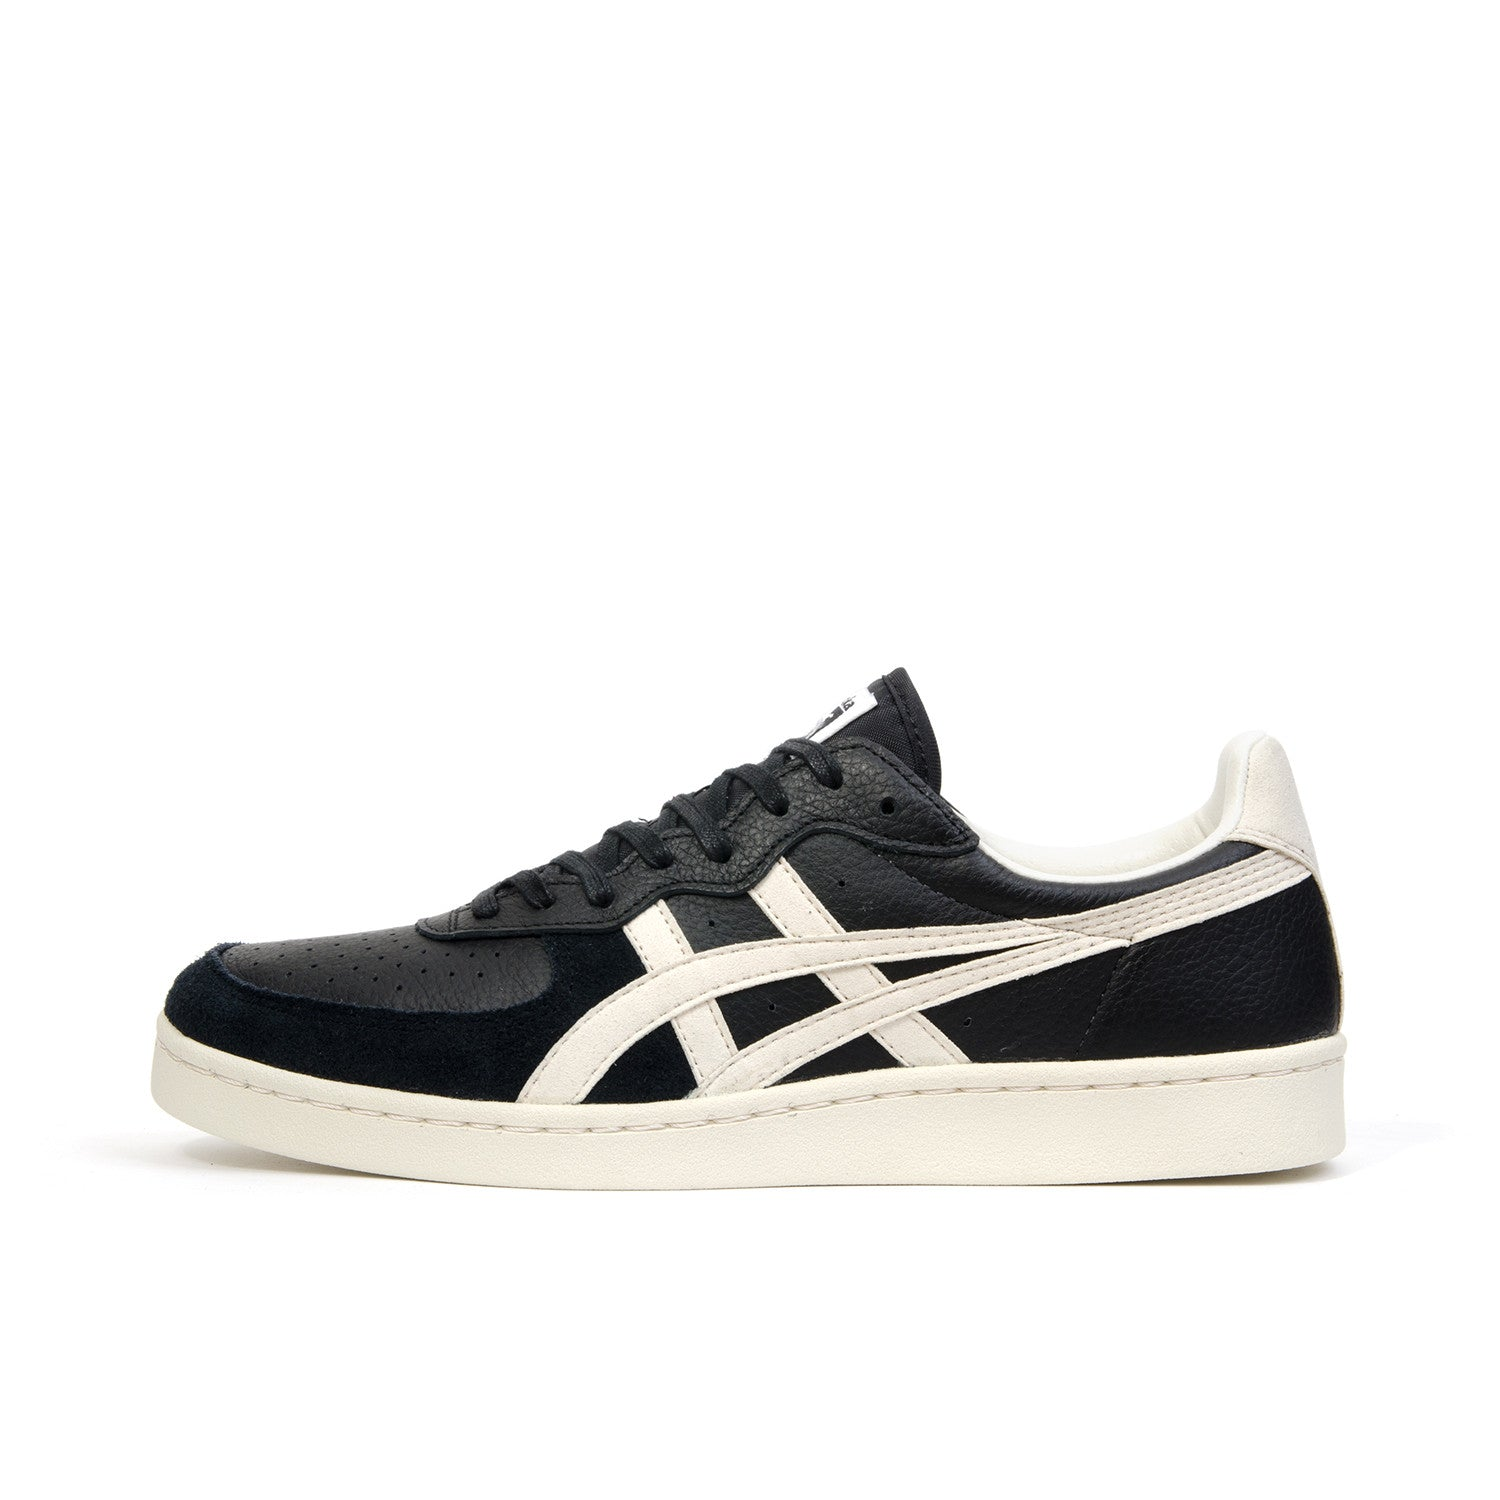 outlet store 57daf 05a1e Onitsuka Tiger GSM Black/White